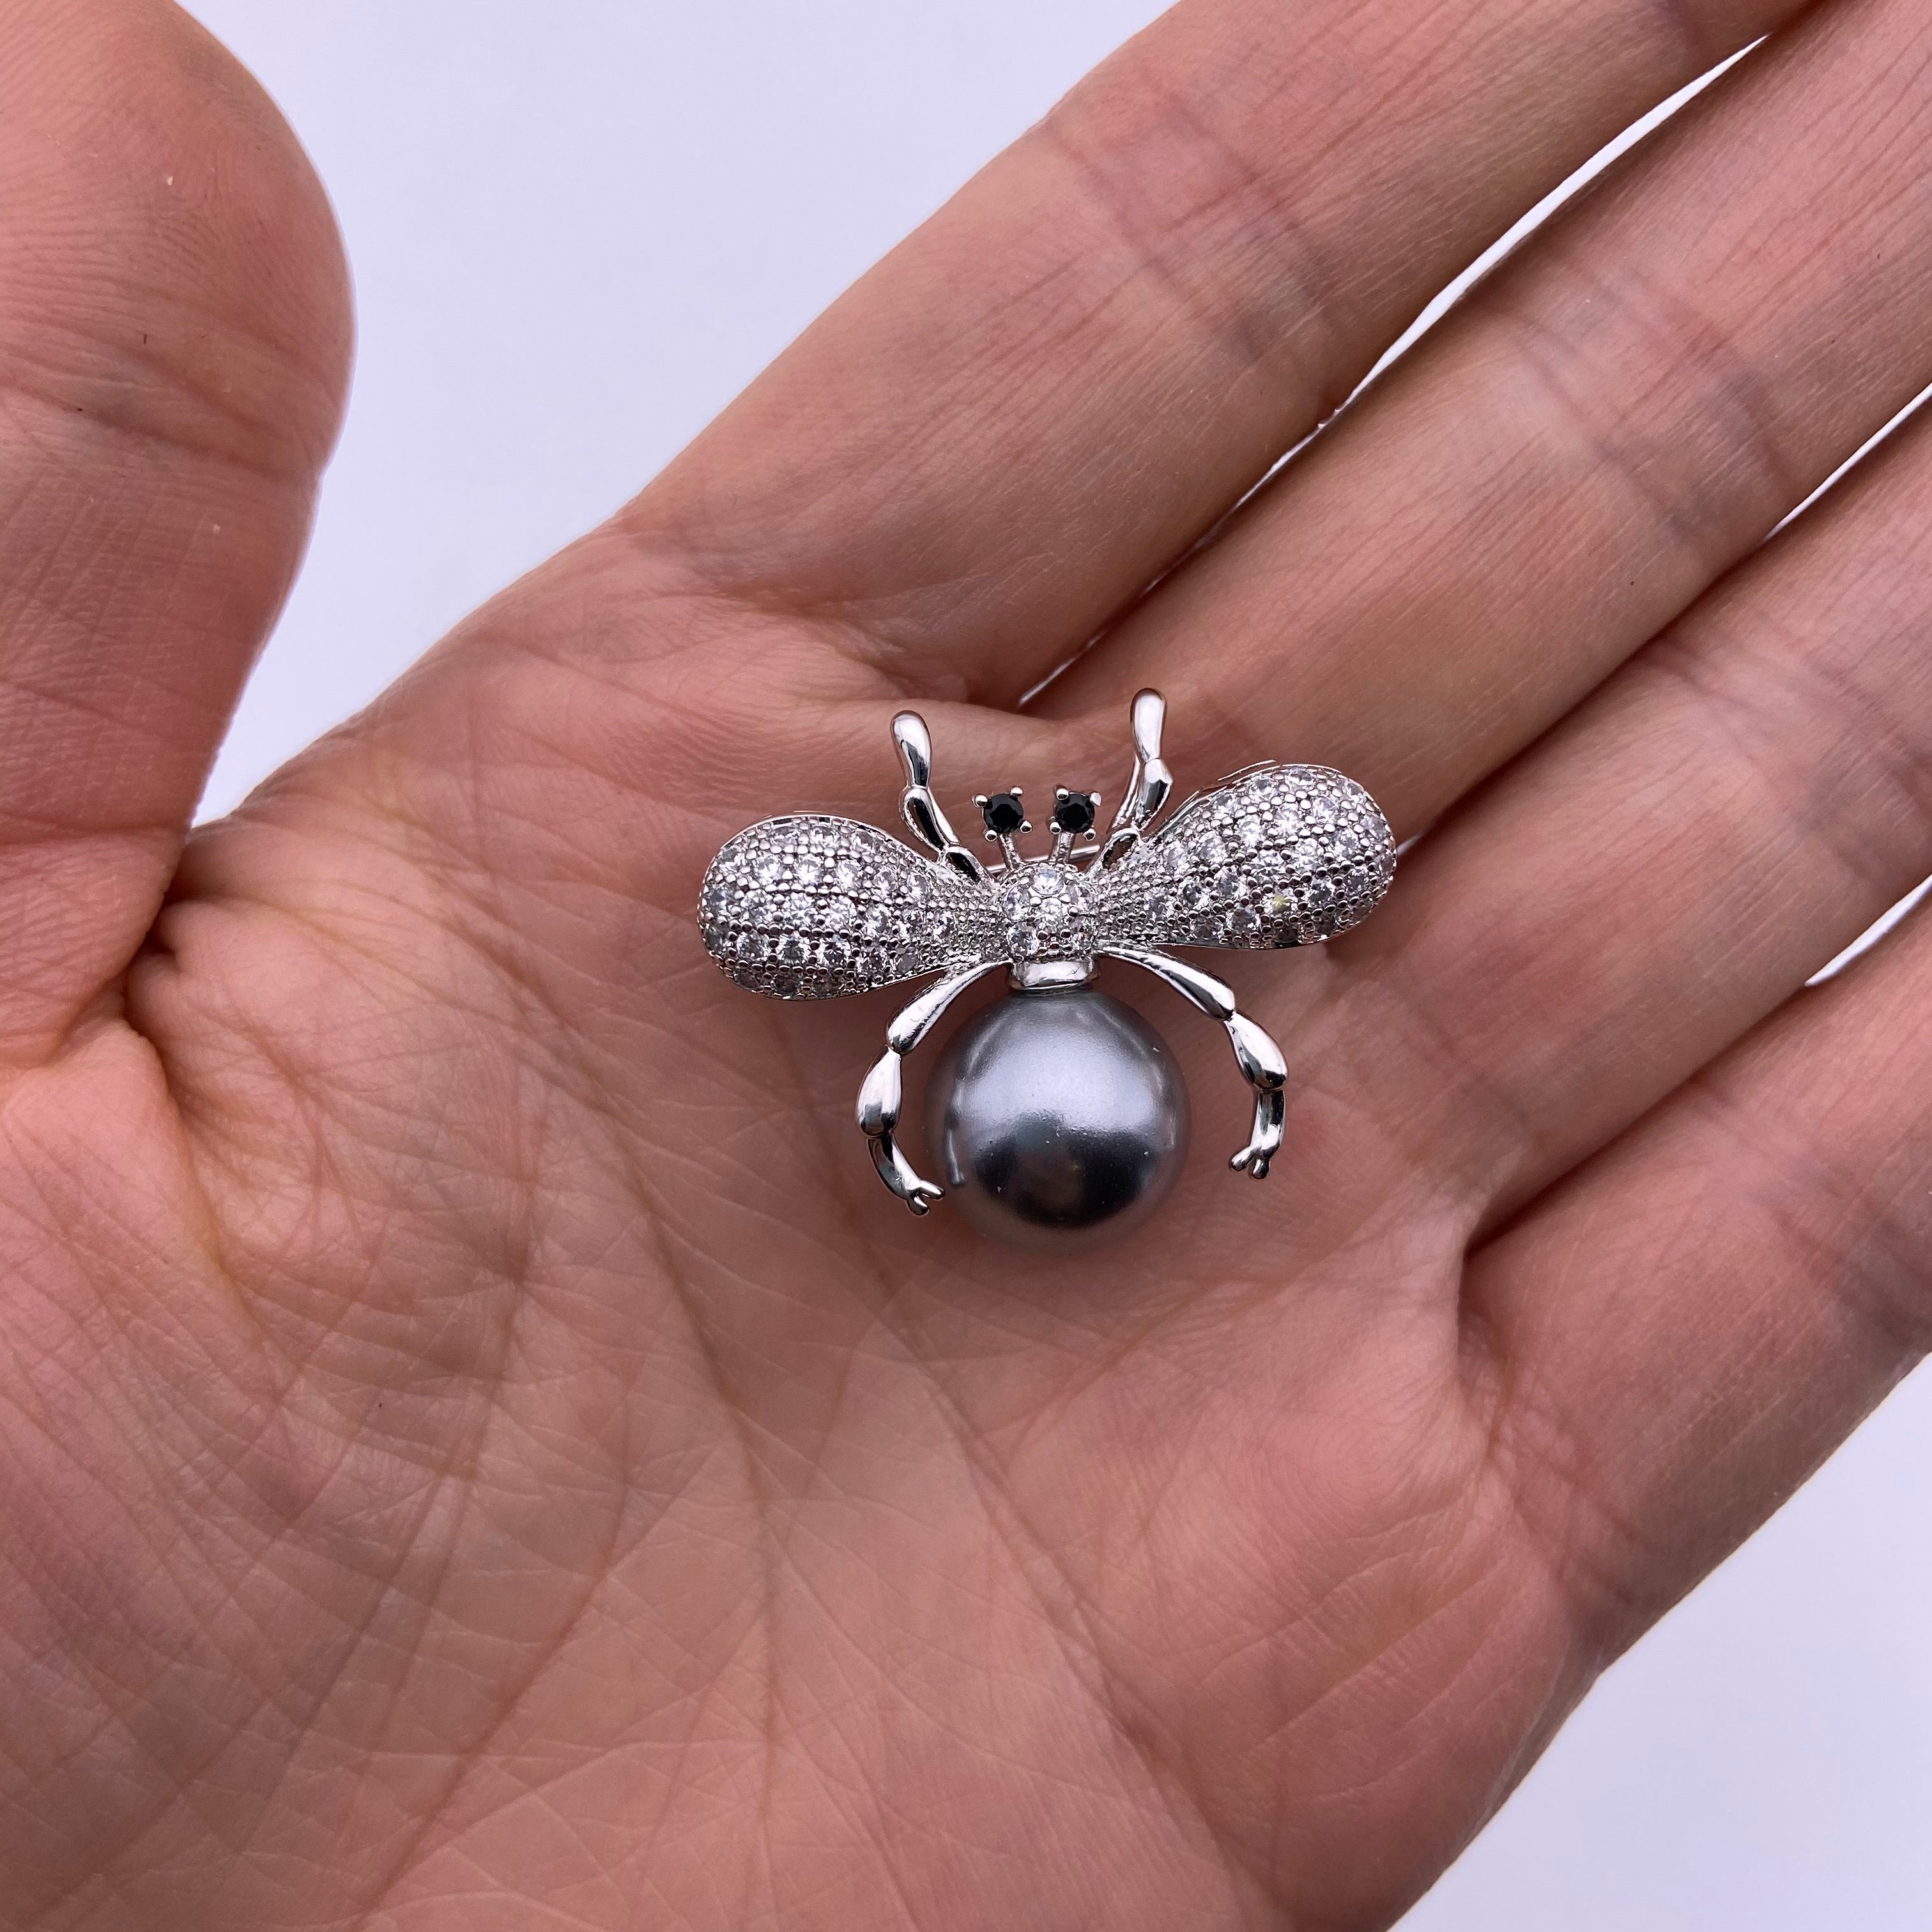 Seashell pearl insect brooch/pendant